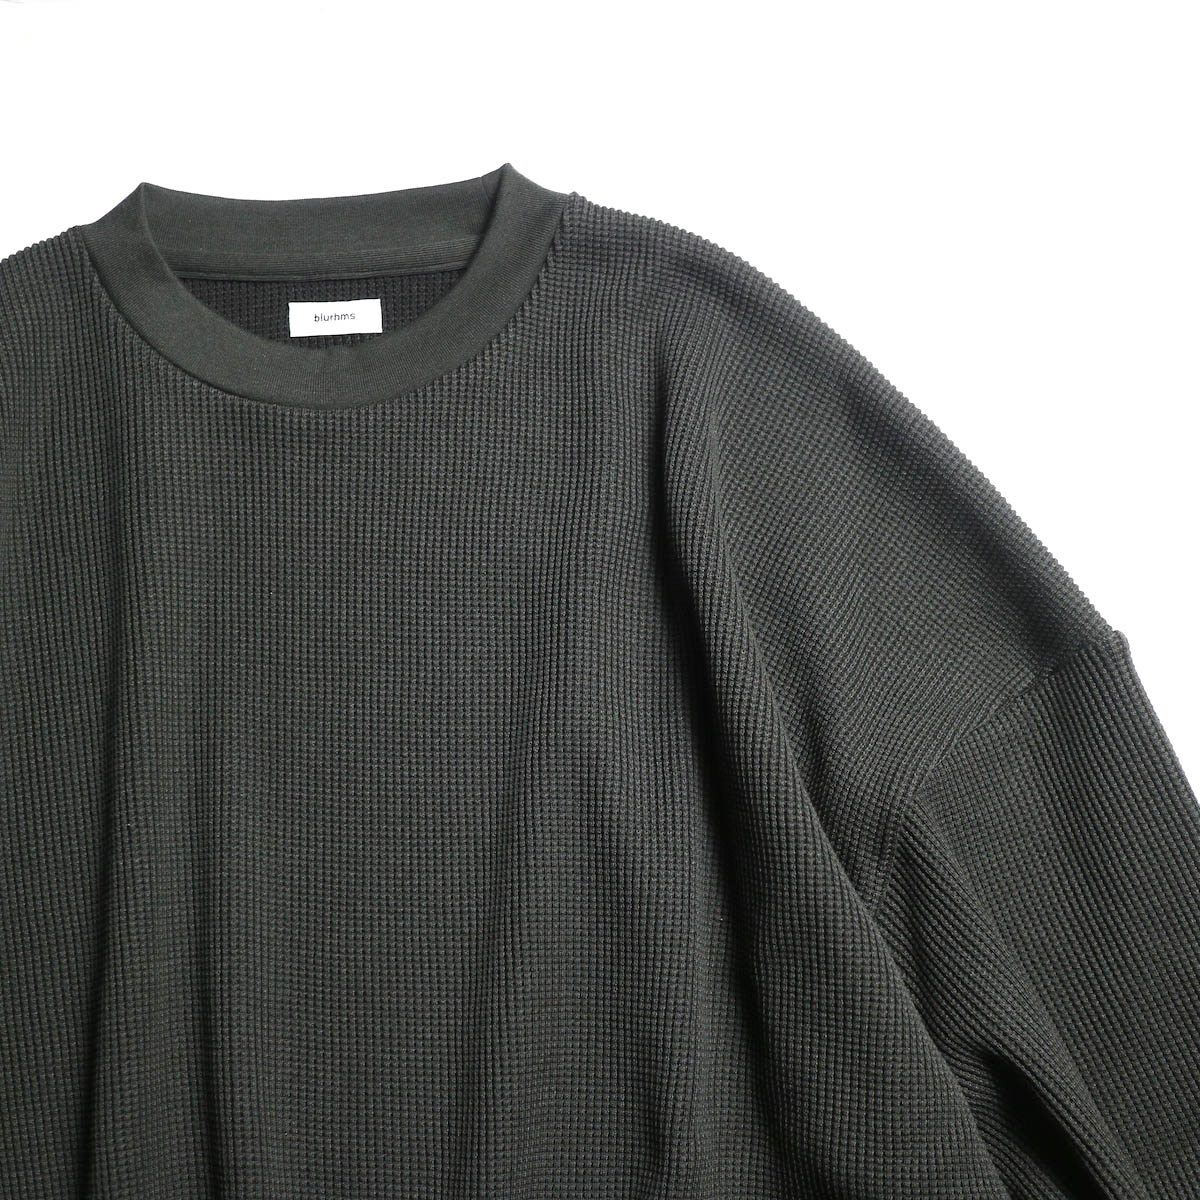 blurhms / Cotton Cupro Waffle Pullover L/S (Charcoal)  襟